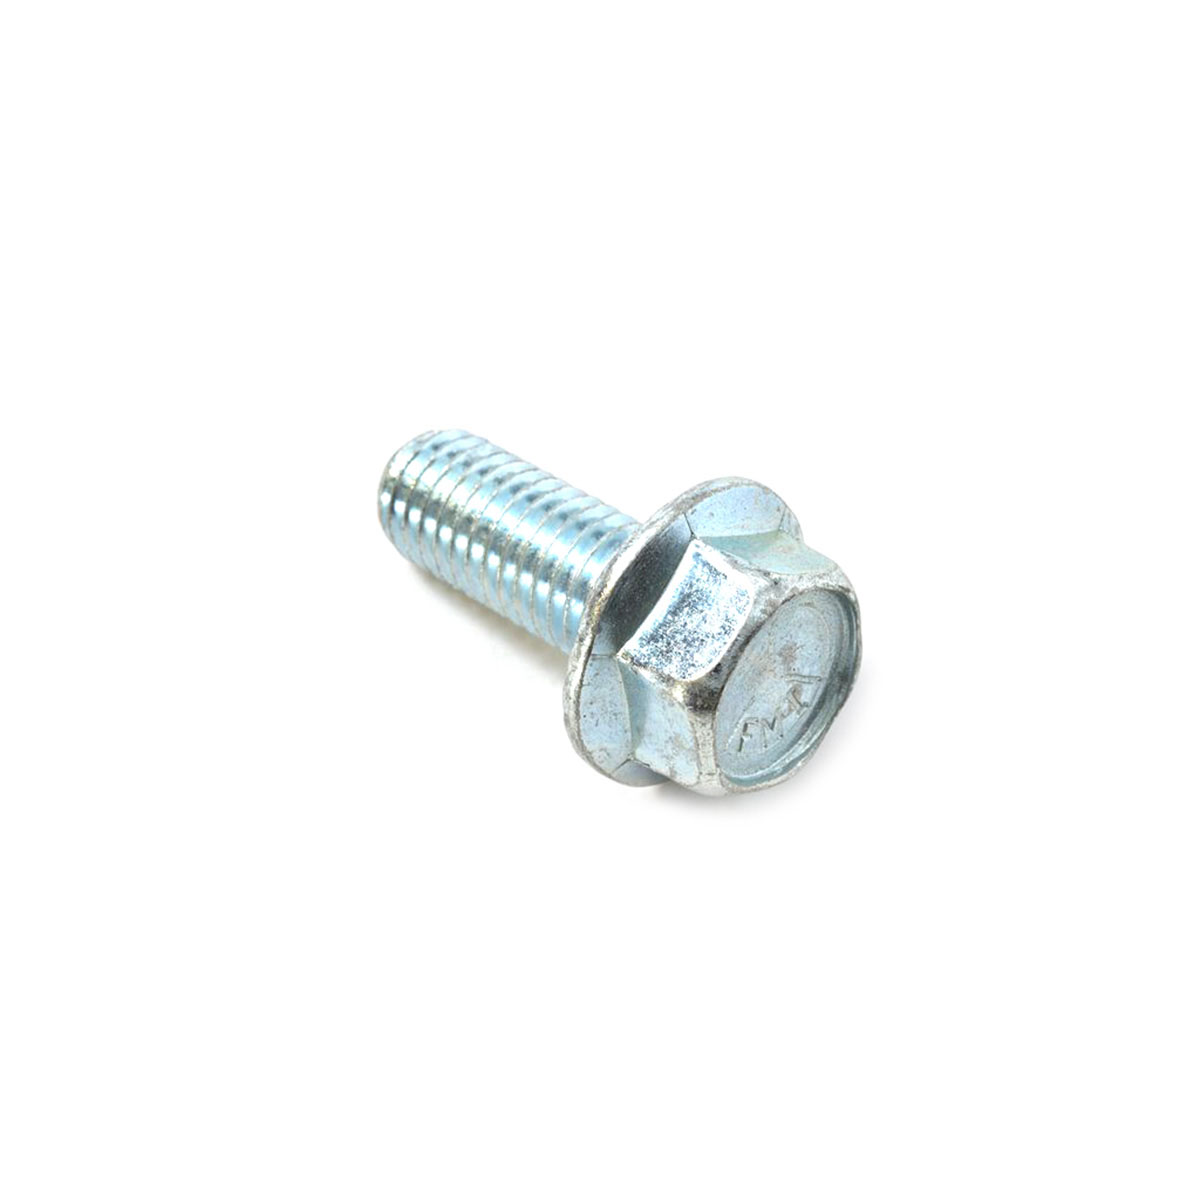 Scag Serrated Flange Hex Head Z Cap Screw 1/2-13X1.25 04017-37